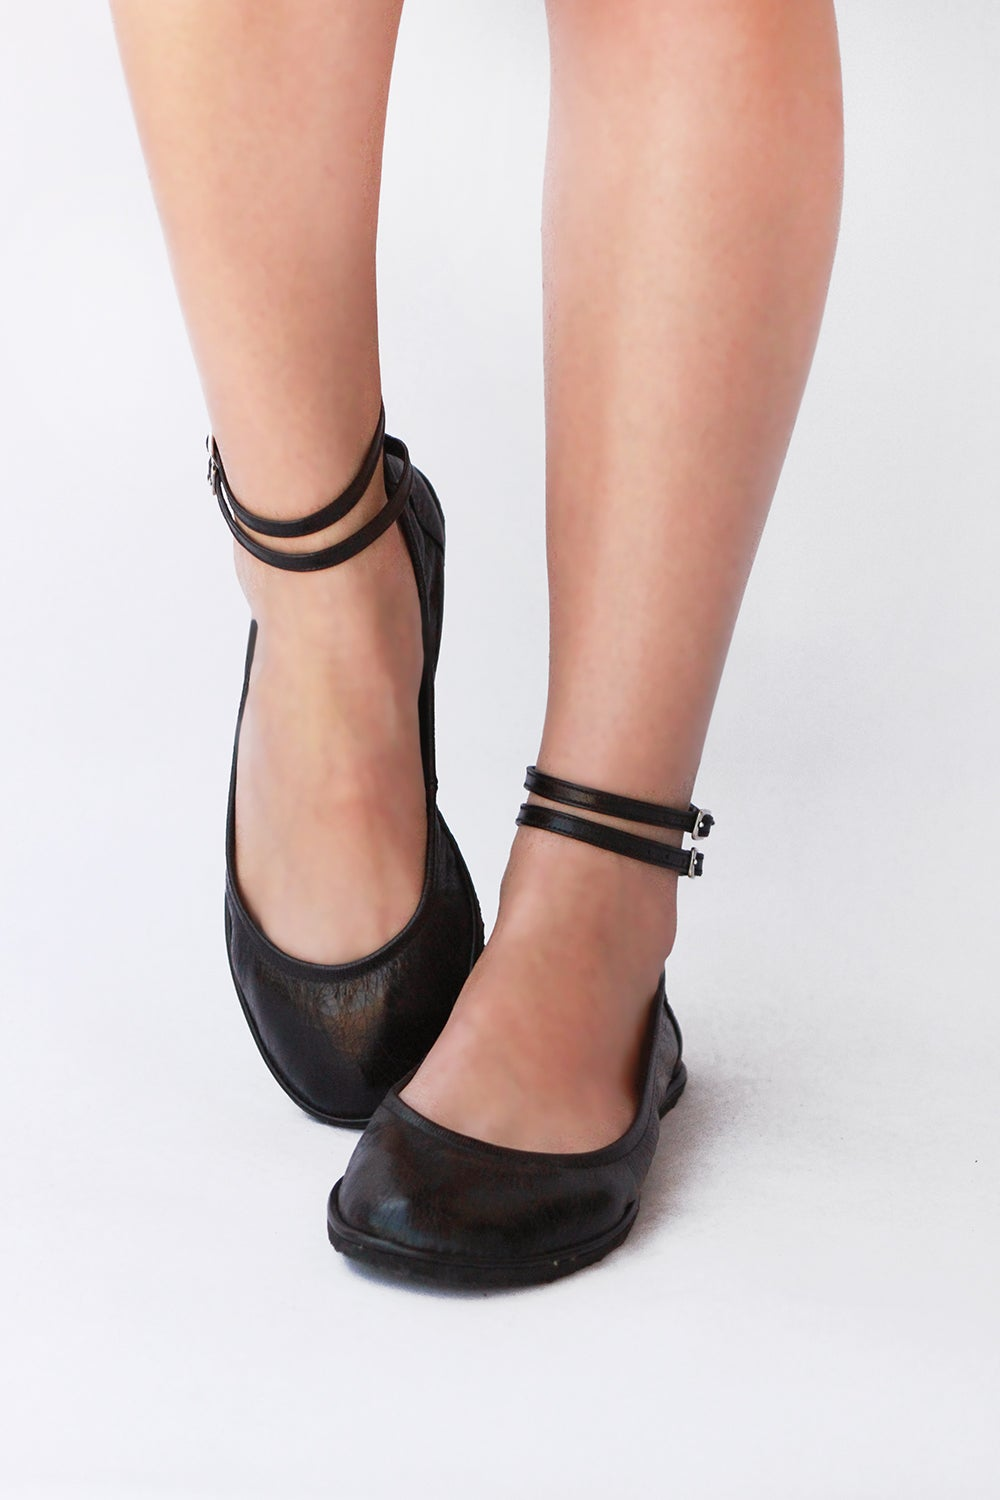 Casual Shoes For Girls With Big Feet